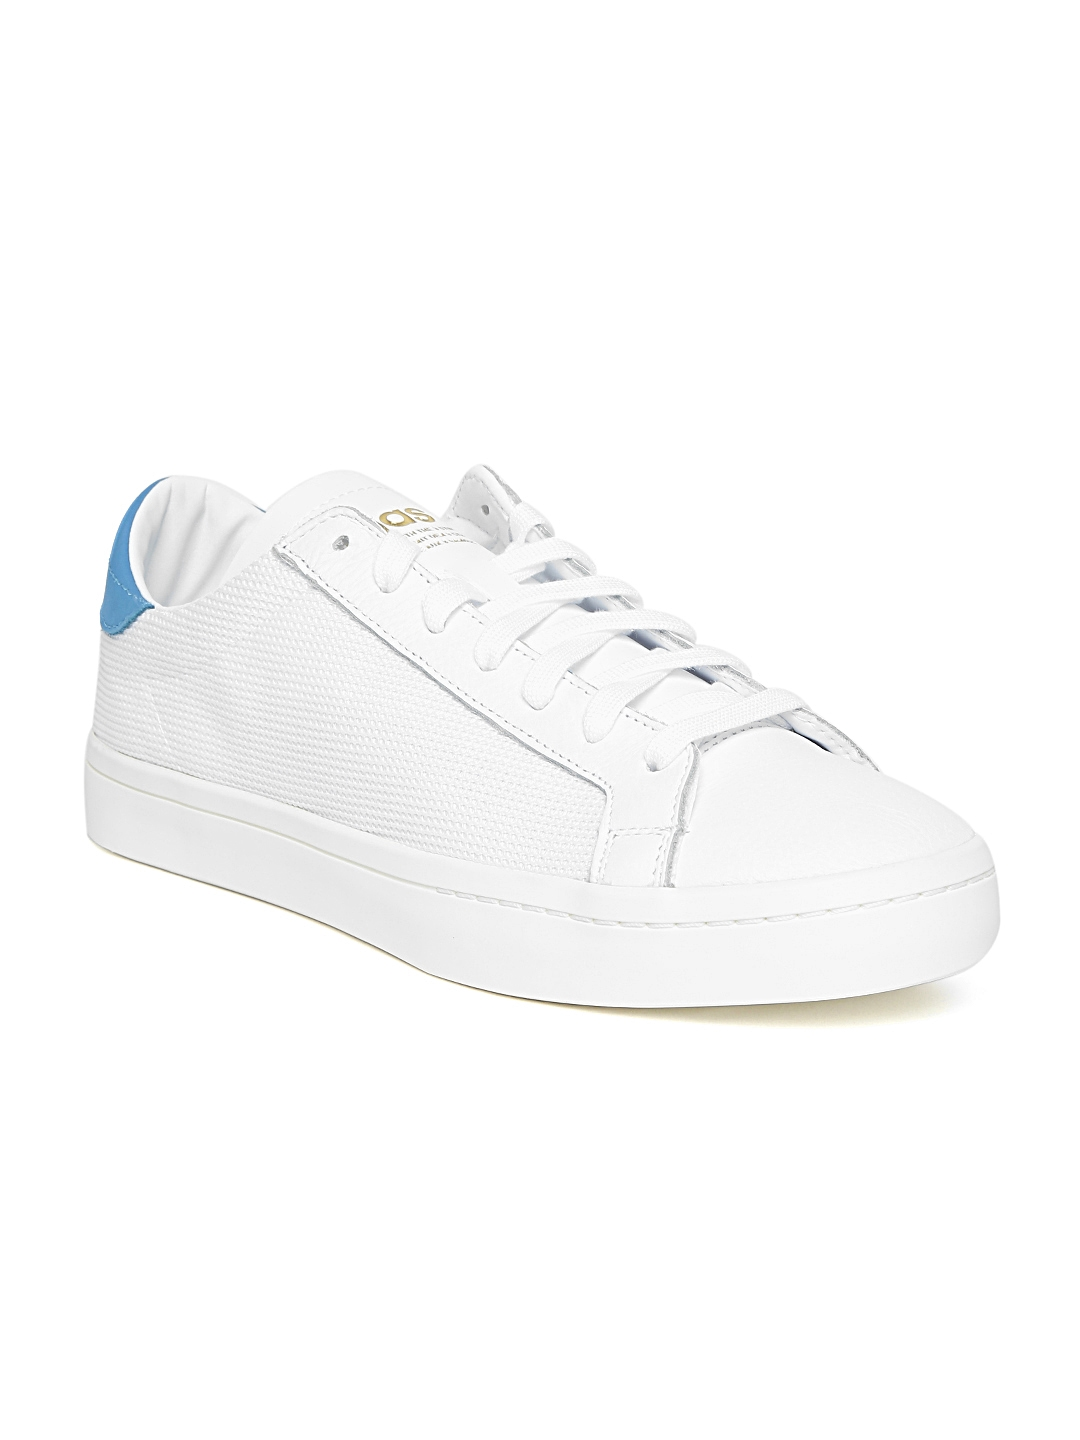 0b656832a476 Buy ADIDAS Originals Men White Court Vantage Sneakers - Casual Shoes ...